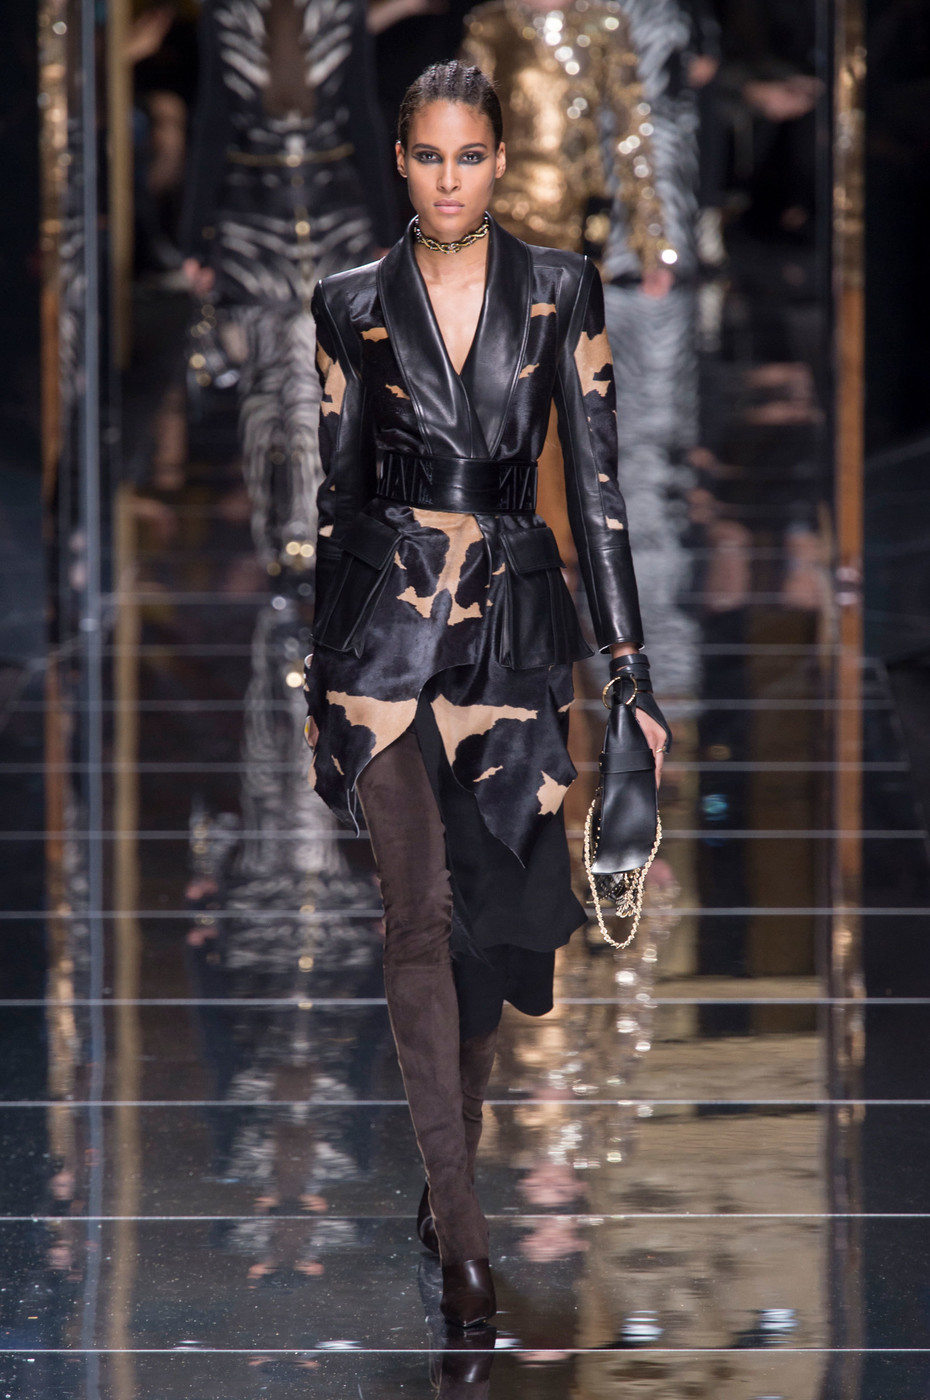 balmain at paris fashion week fall 2017 livingly. Black Bedroom Furniture Sets. Home Design Ideas